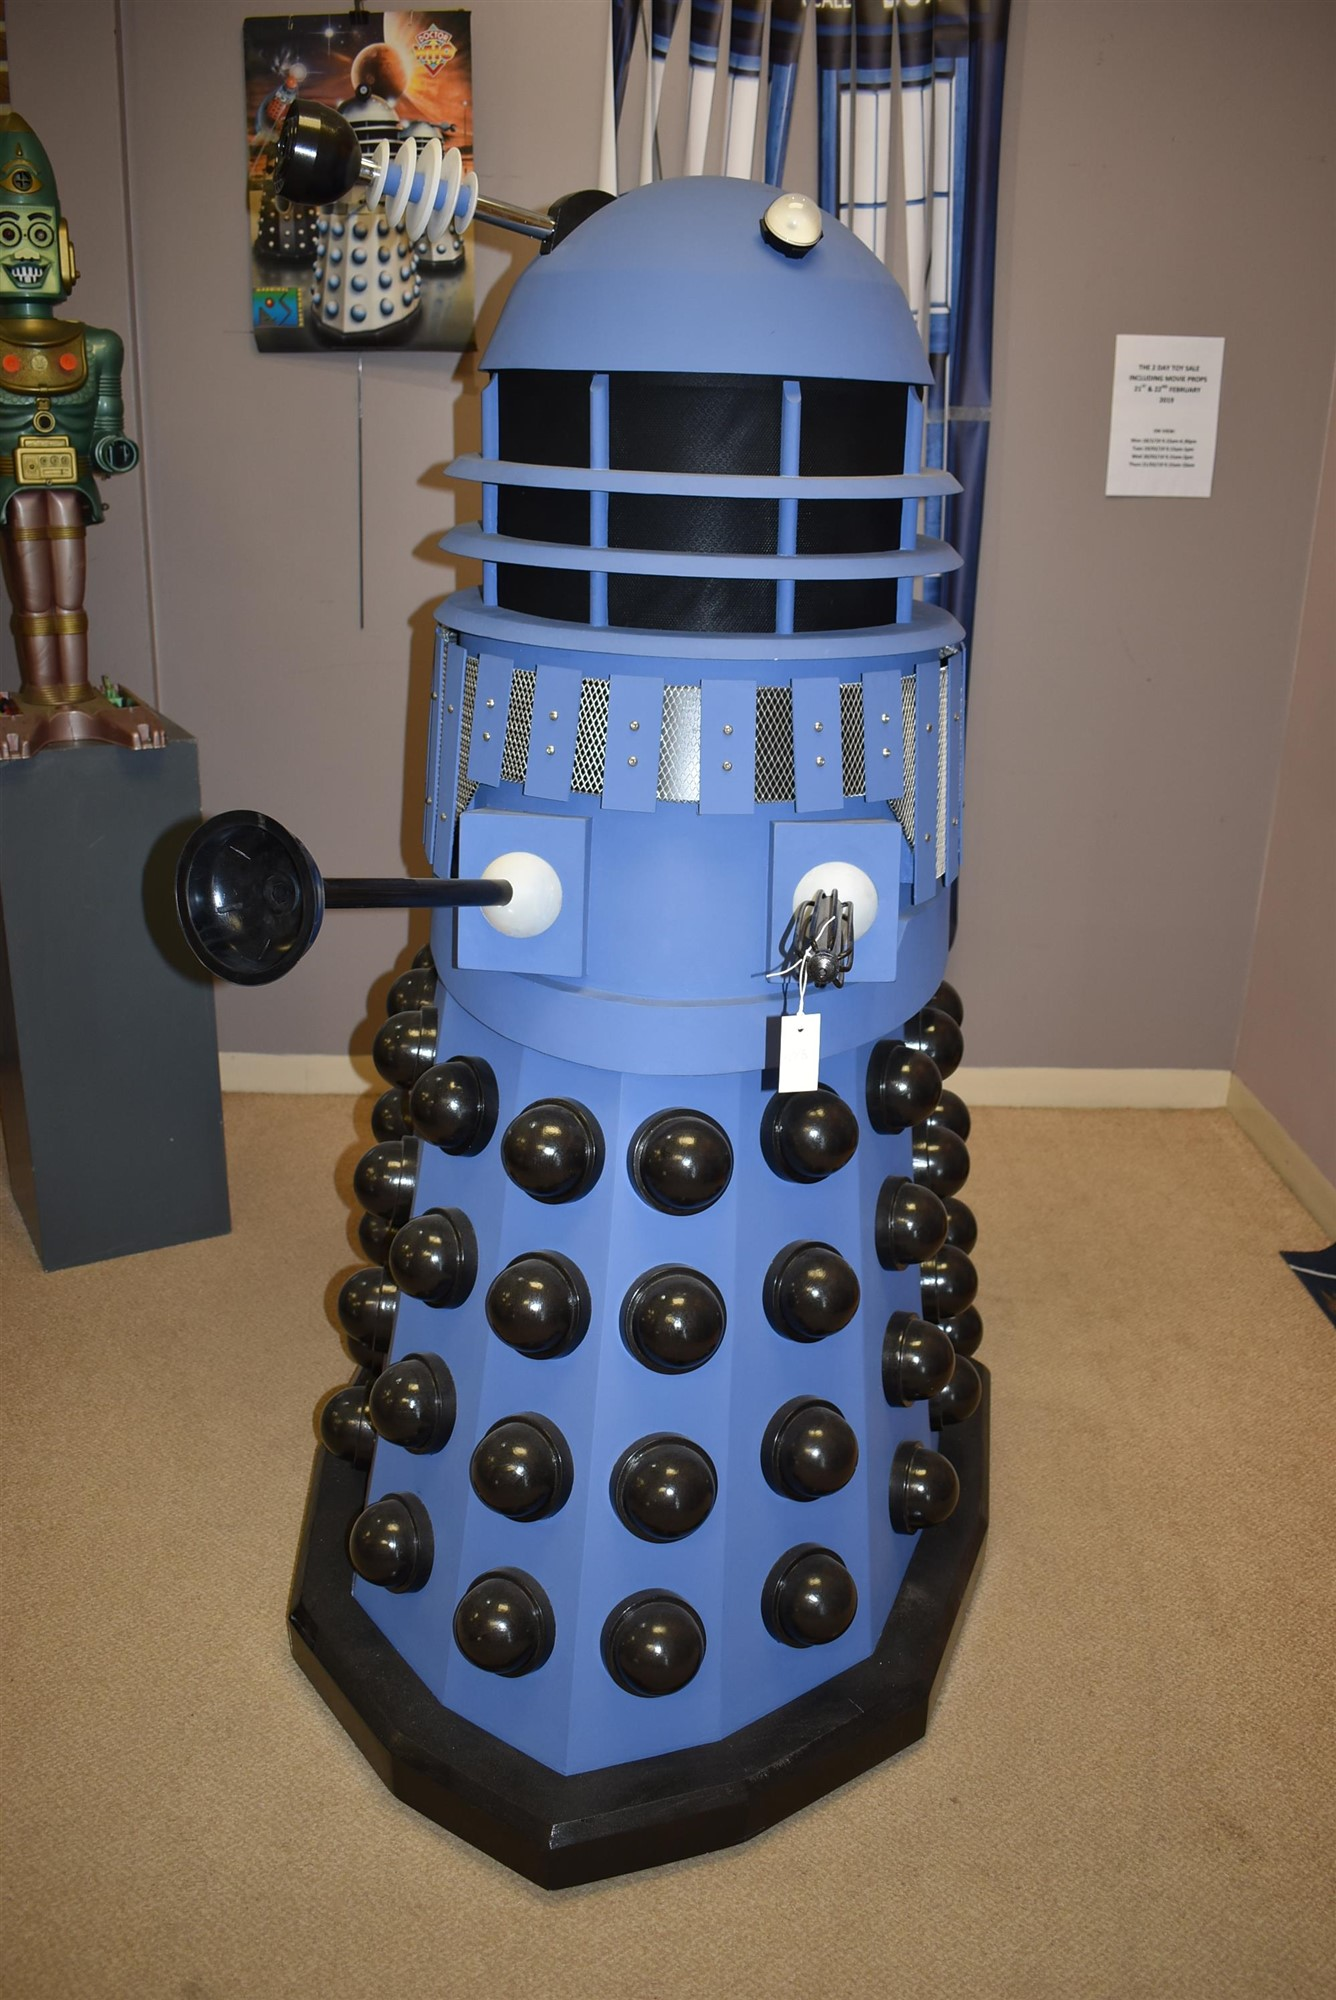 Full sized Dalek from Doctor Who